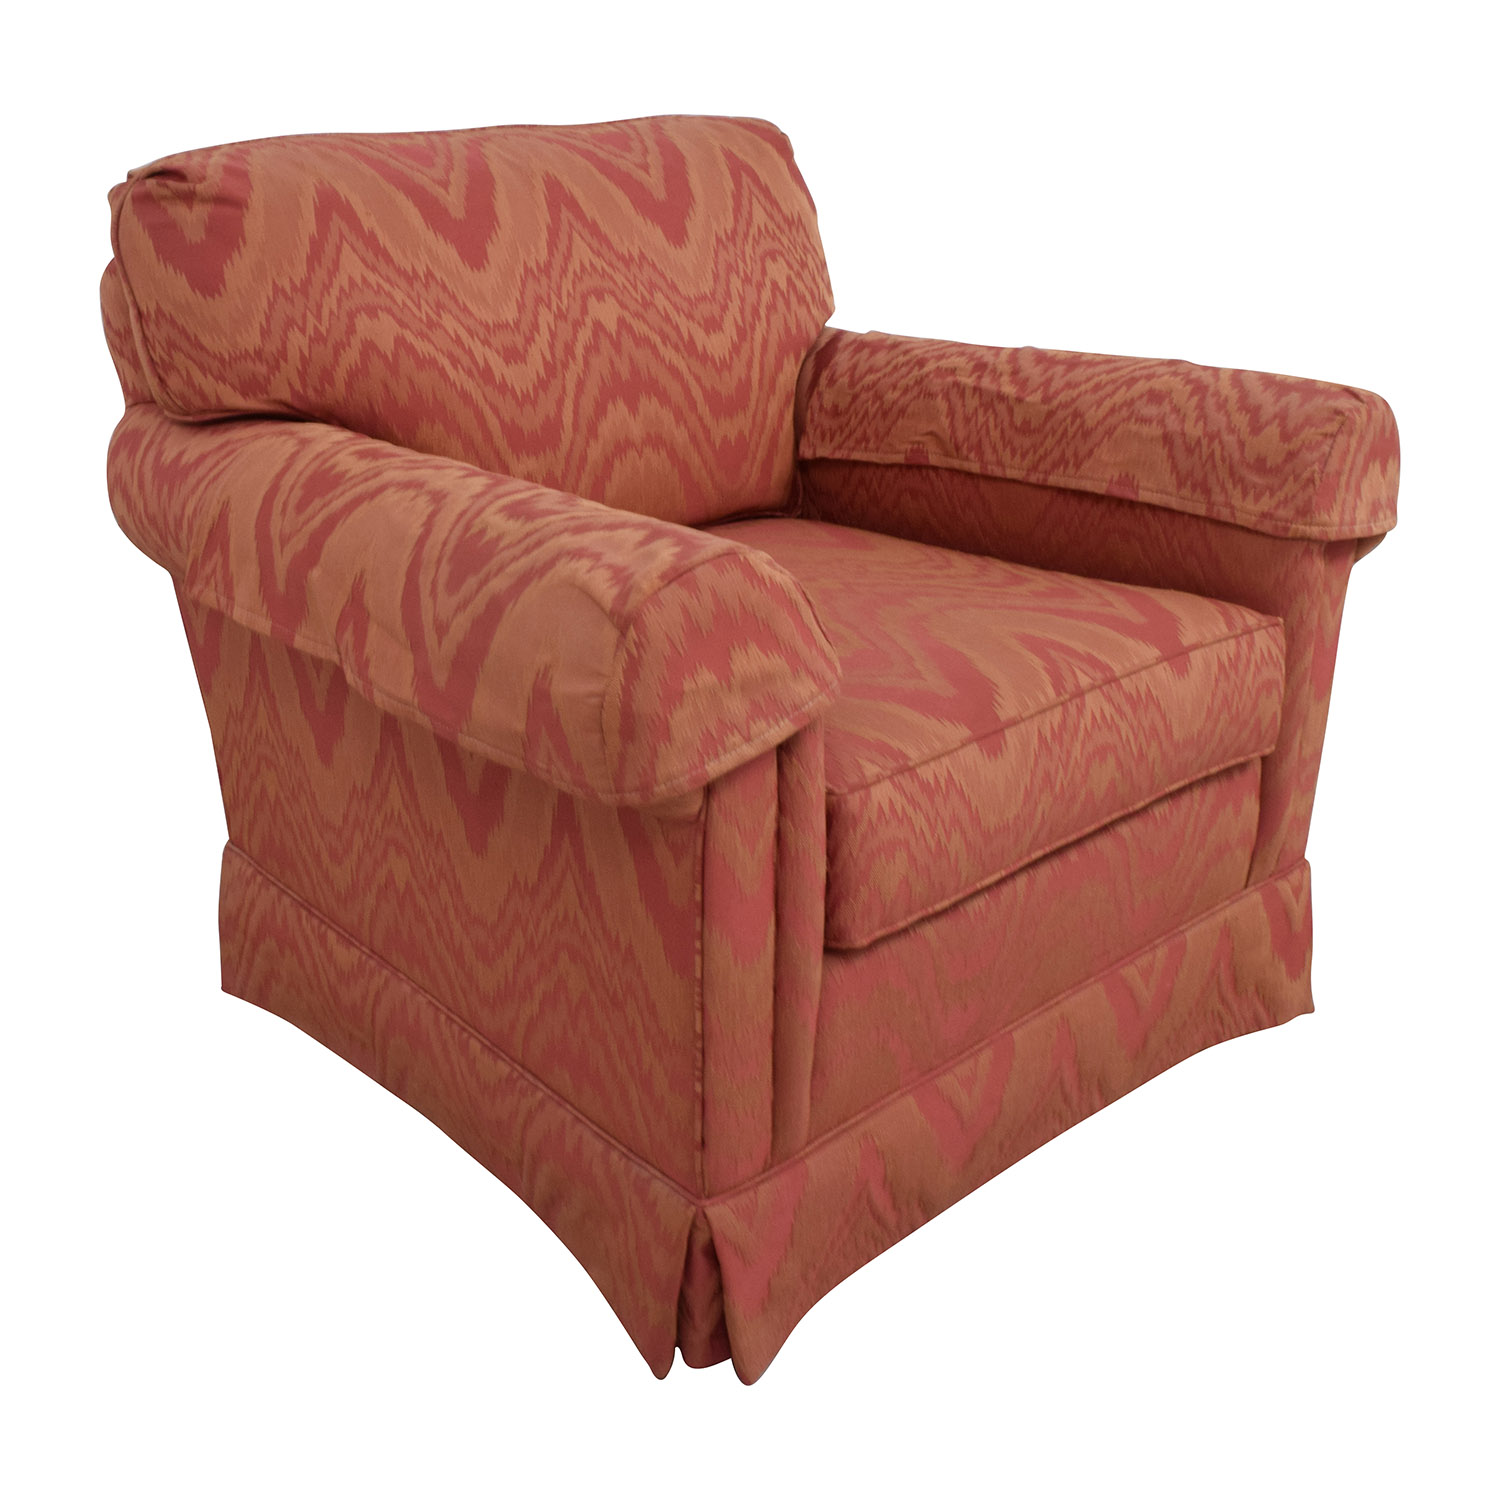 buy Sherrill Orange and Red Patterned Accent Chair Sherrill